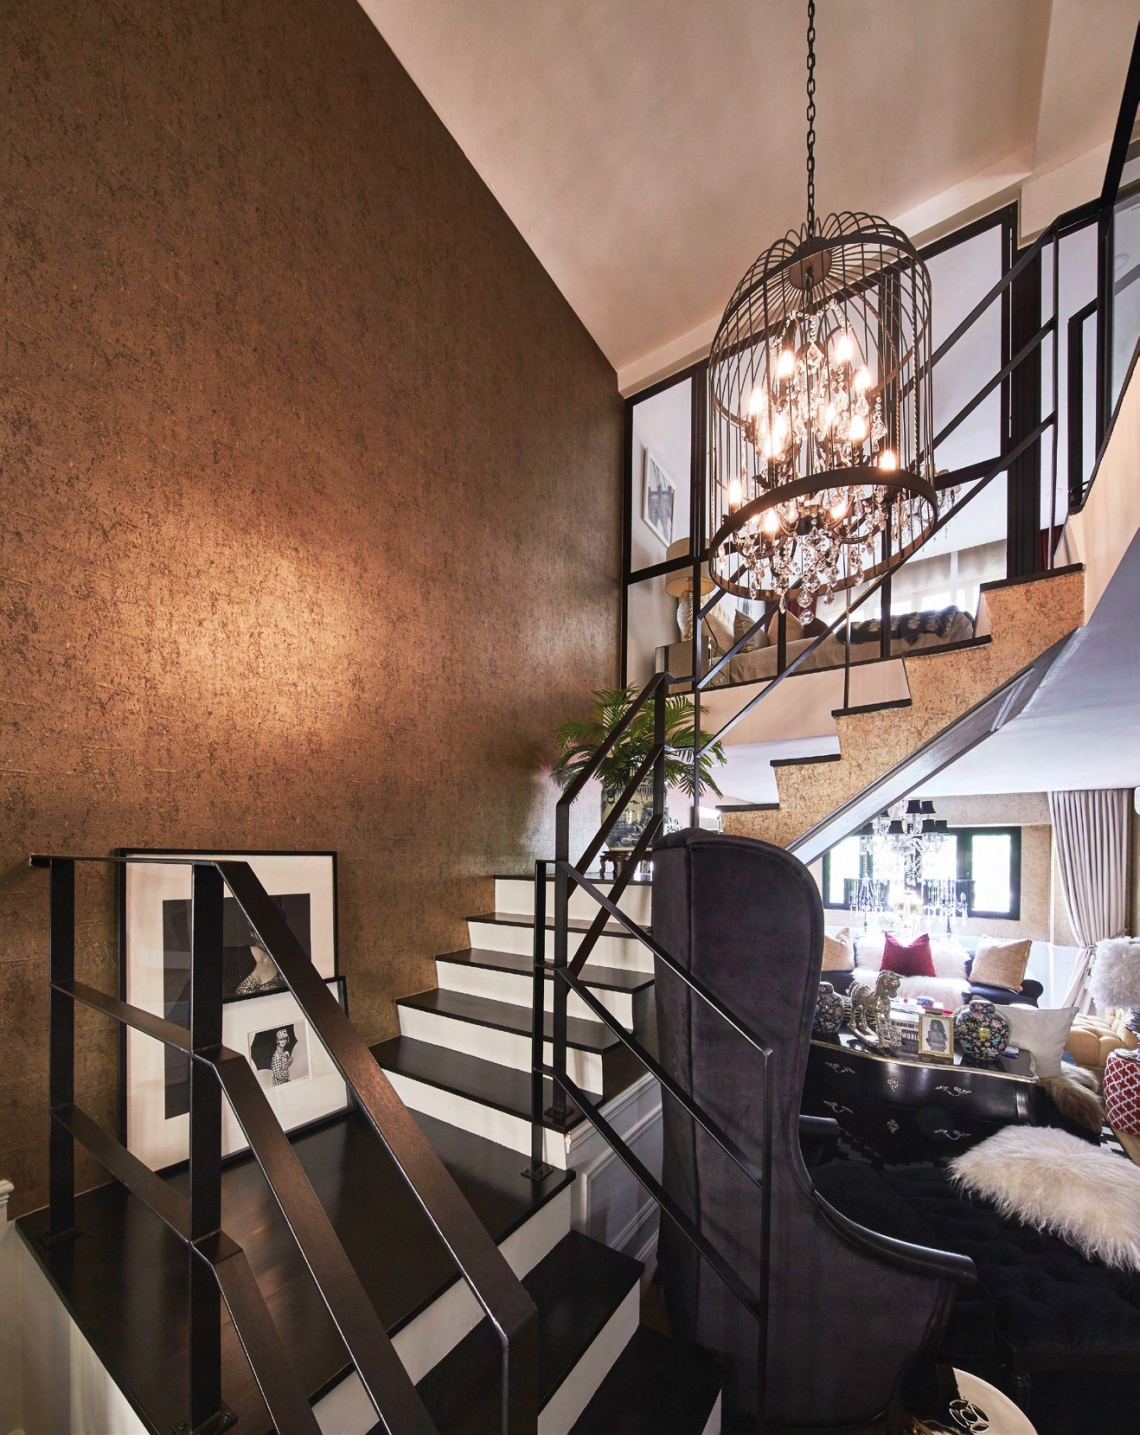 As advised by their fengshui master, the couple clad the walls in their home with gold textured wallpaper. A bird cage-inspired chandelier hangs by the staircase and creates an attractive focal point.